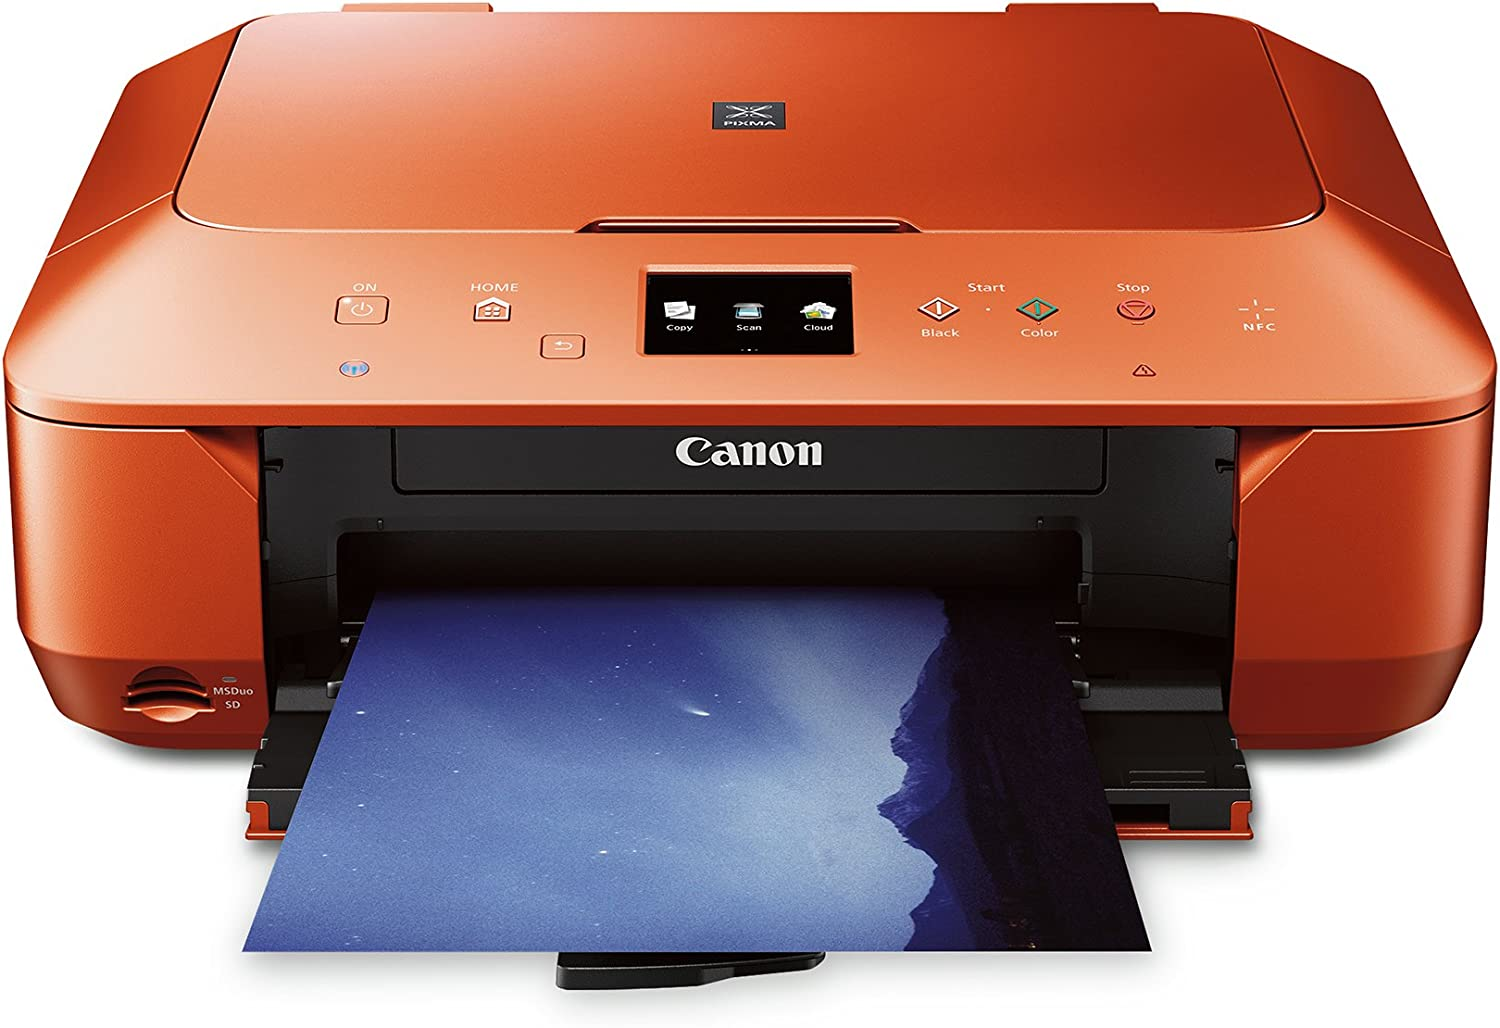 CANON PIXMA MG6620 WIRELESS ALL-IN-ONE COLOR CLOUD Printer, Mobile Smart Phone, Tablet Printing, and AirPrint(TM) Compatible, Burnt Orange